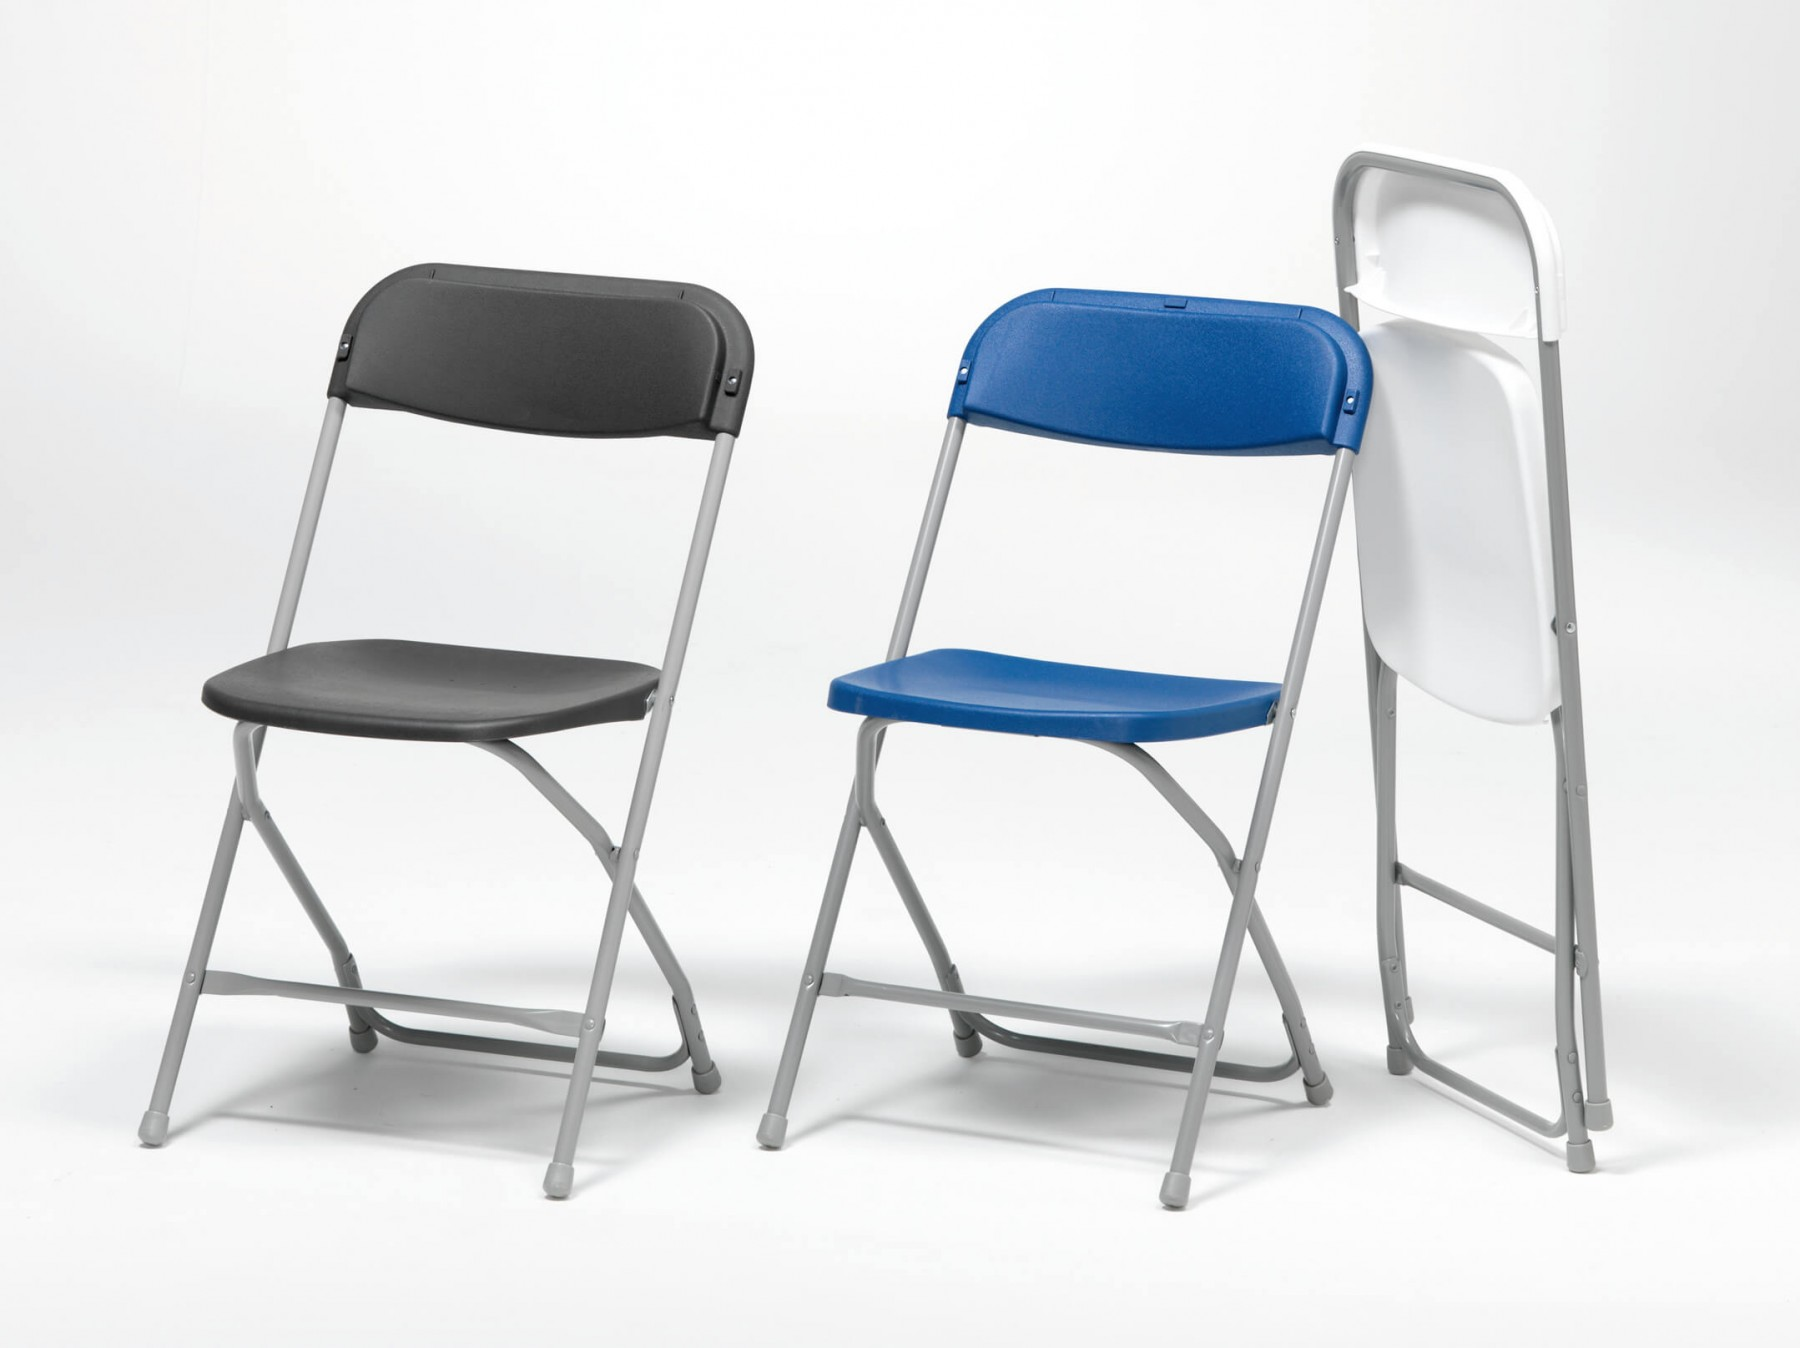 Stabil folding chairs